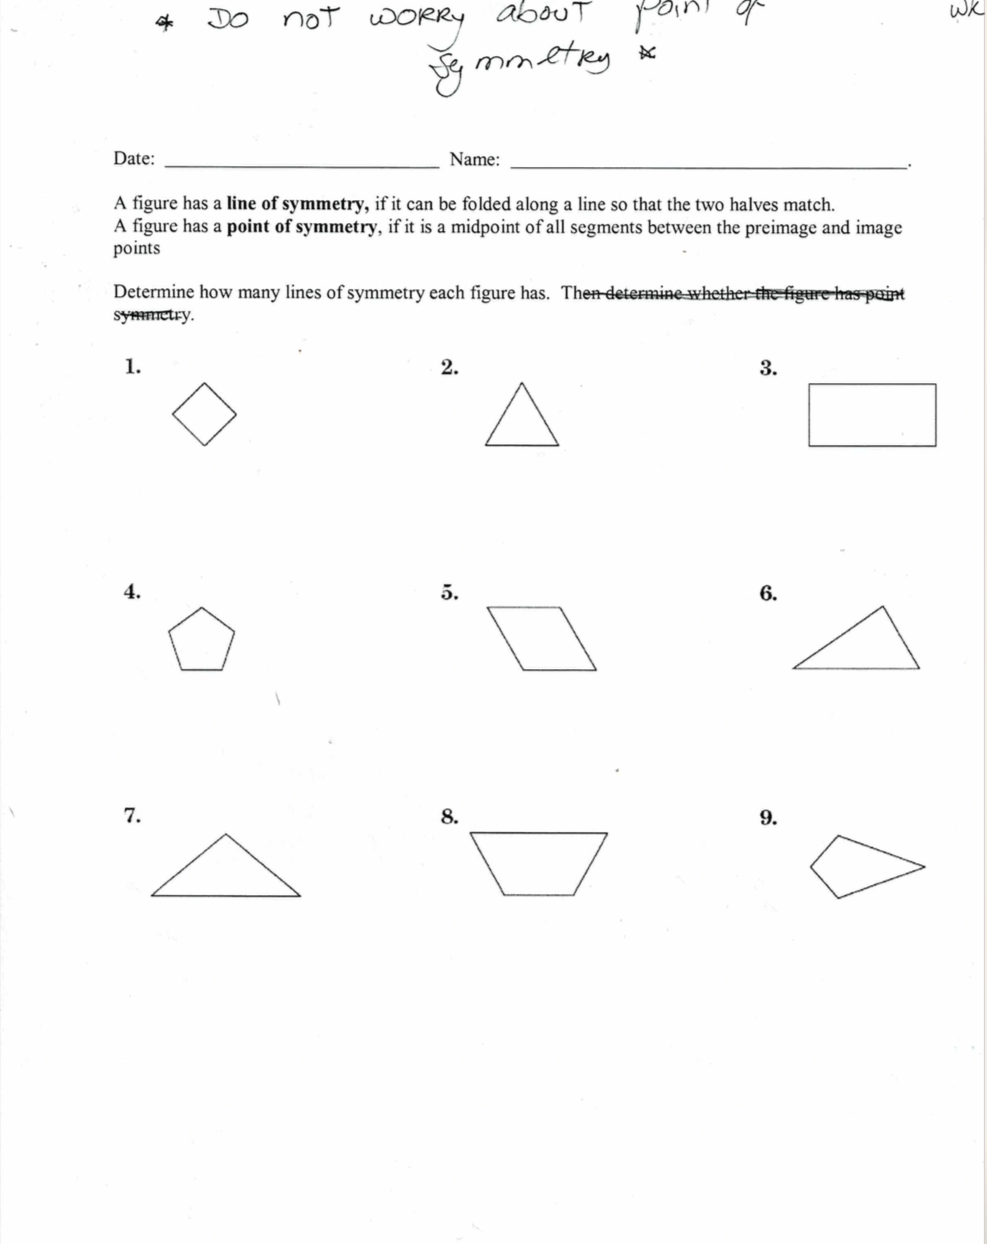 hight resolution of Unit 7.5: Reflections and Line Symmetry - JUNIOR HIGH MATH VIRTUAL CLASSROOM